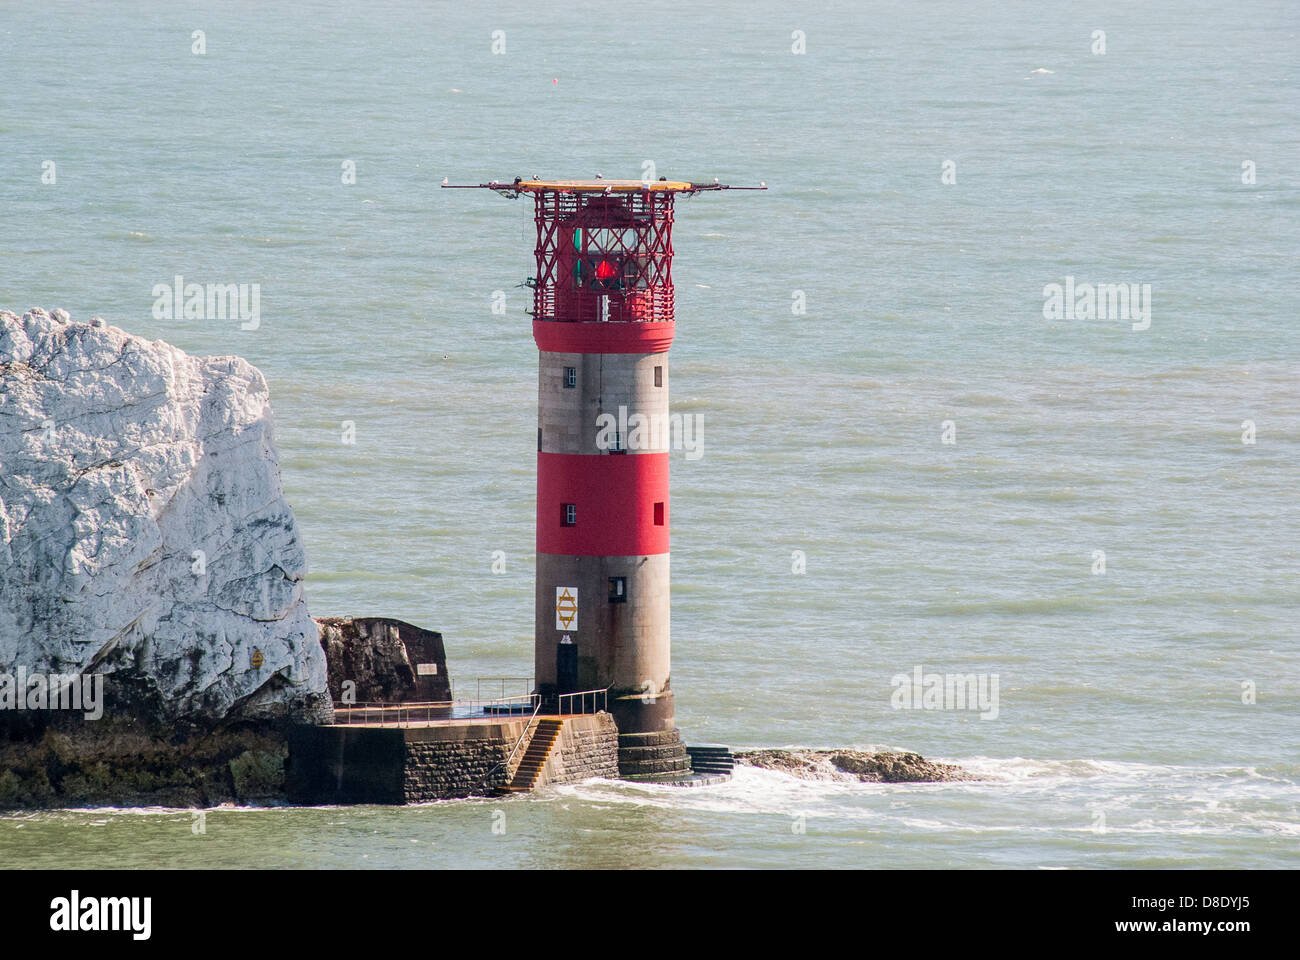 Aerial View of The Needles Lighthouse Isle of Wight - Stock Image